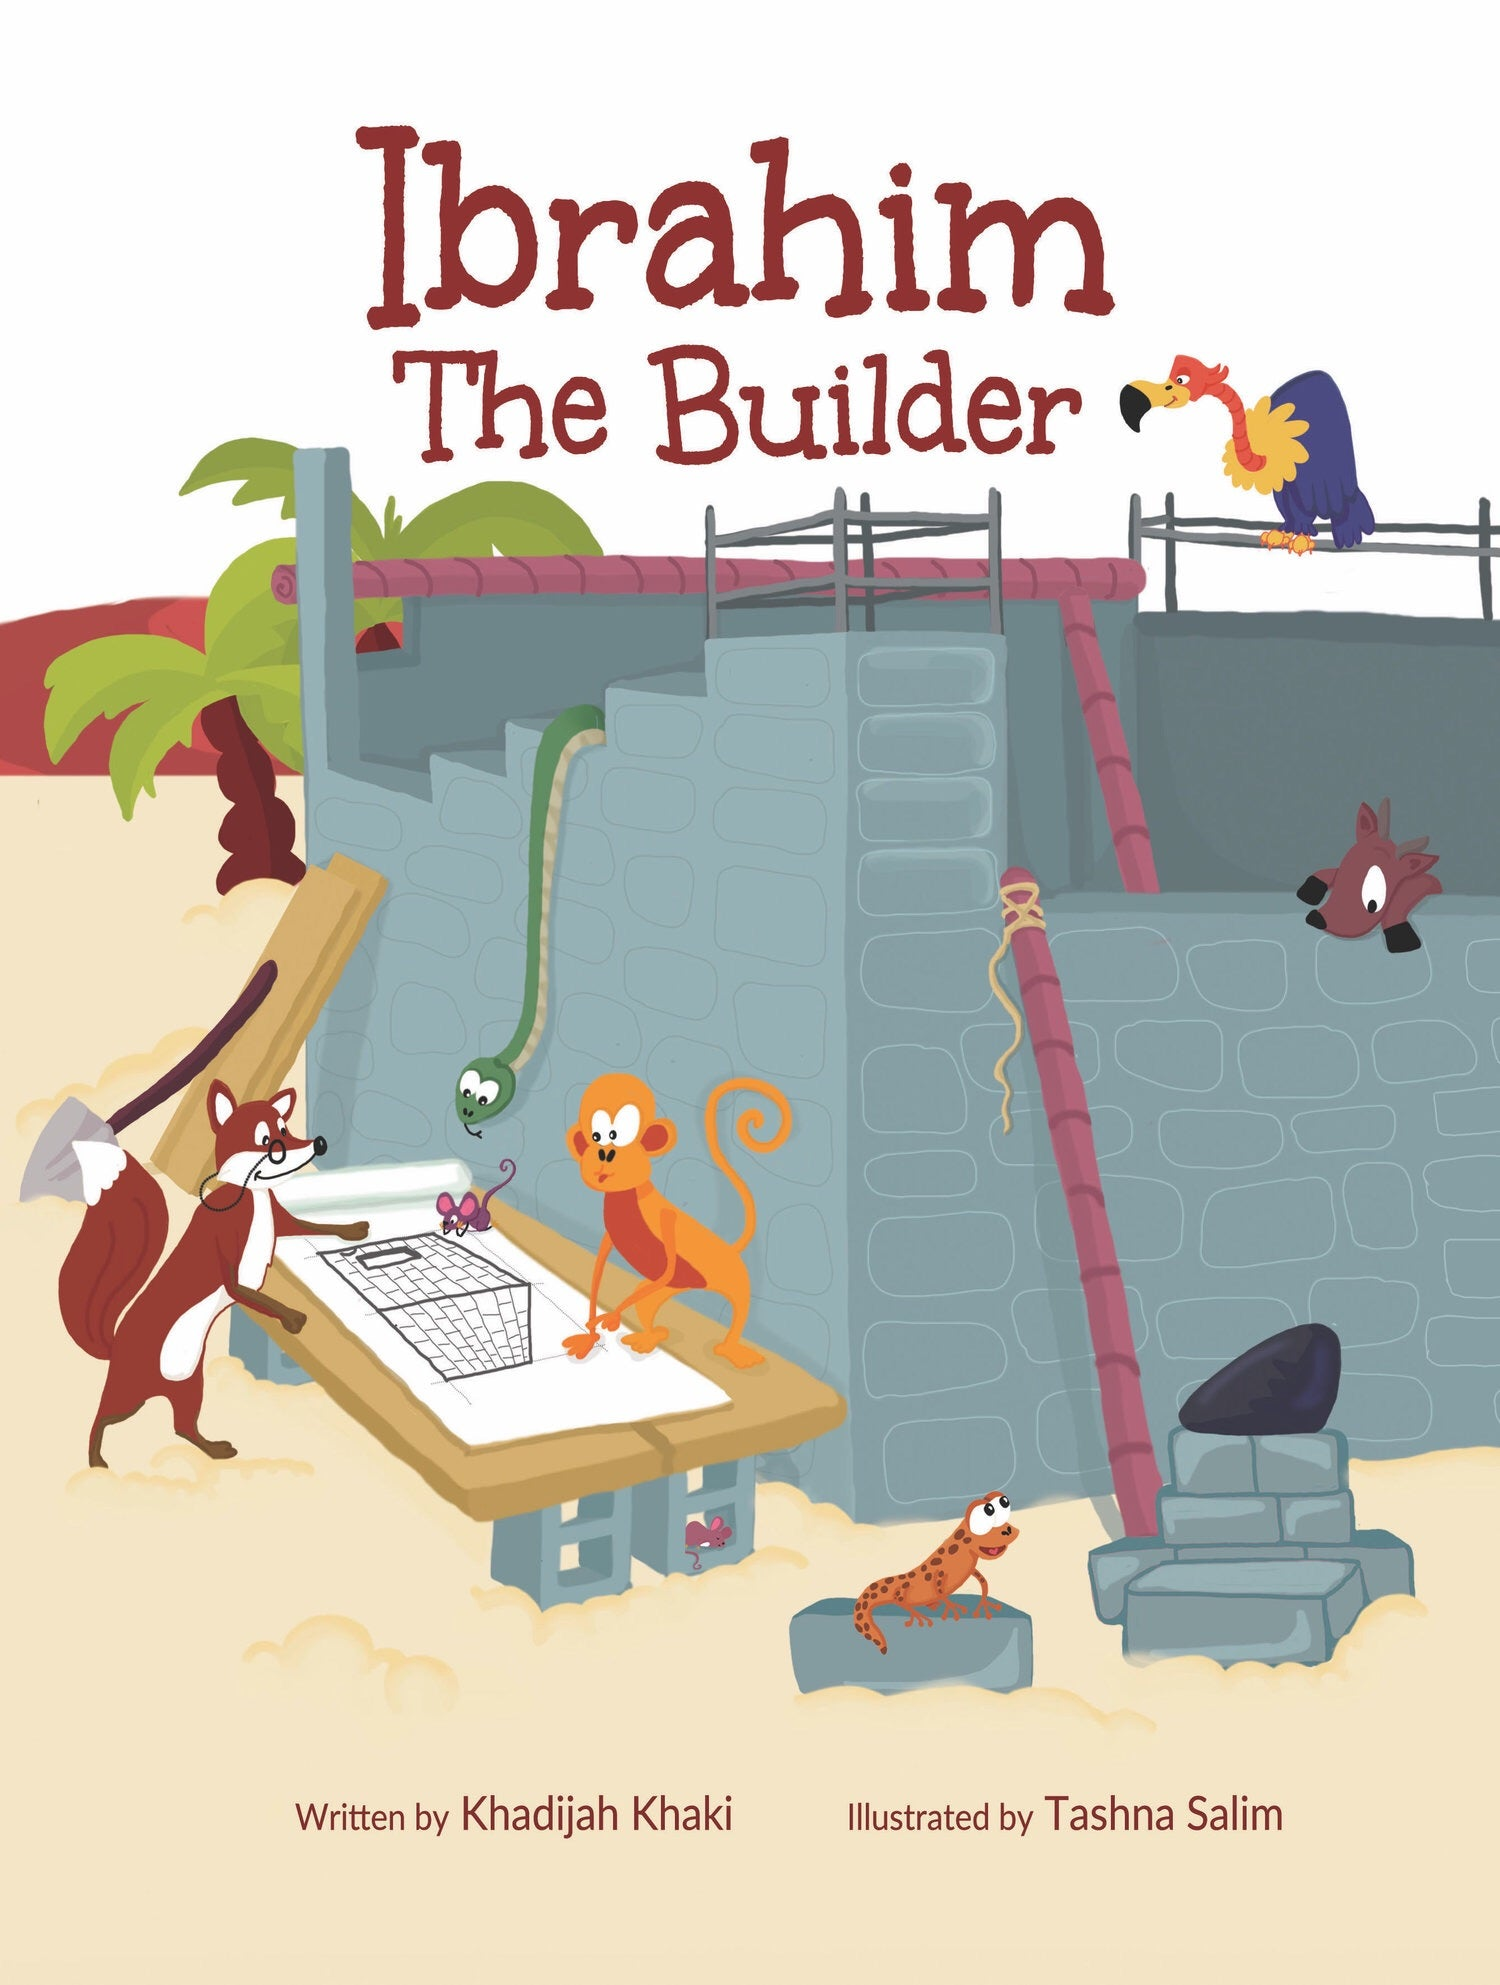 Ibrahim The Builder-Islamic Books-Lunar Learners-Crescent Moon Store